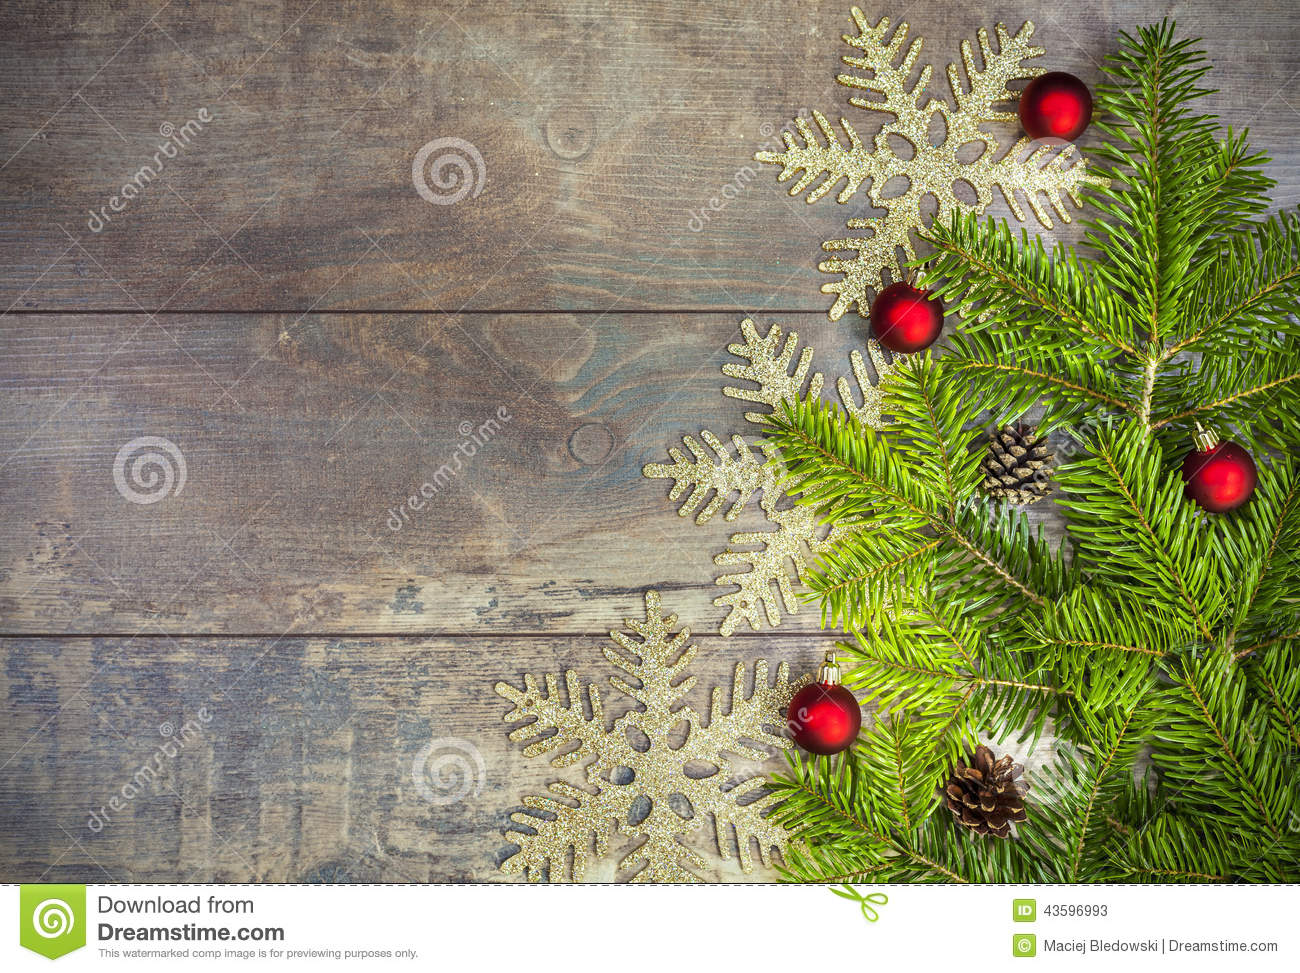 Christmas Tree Branches Background Stock Photo - Image: 47644494